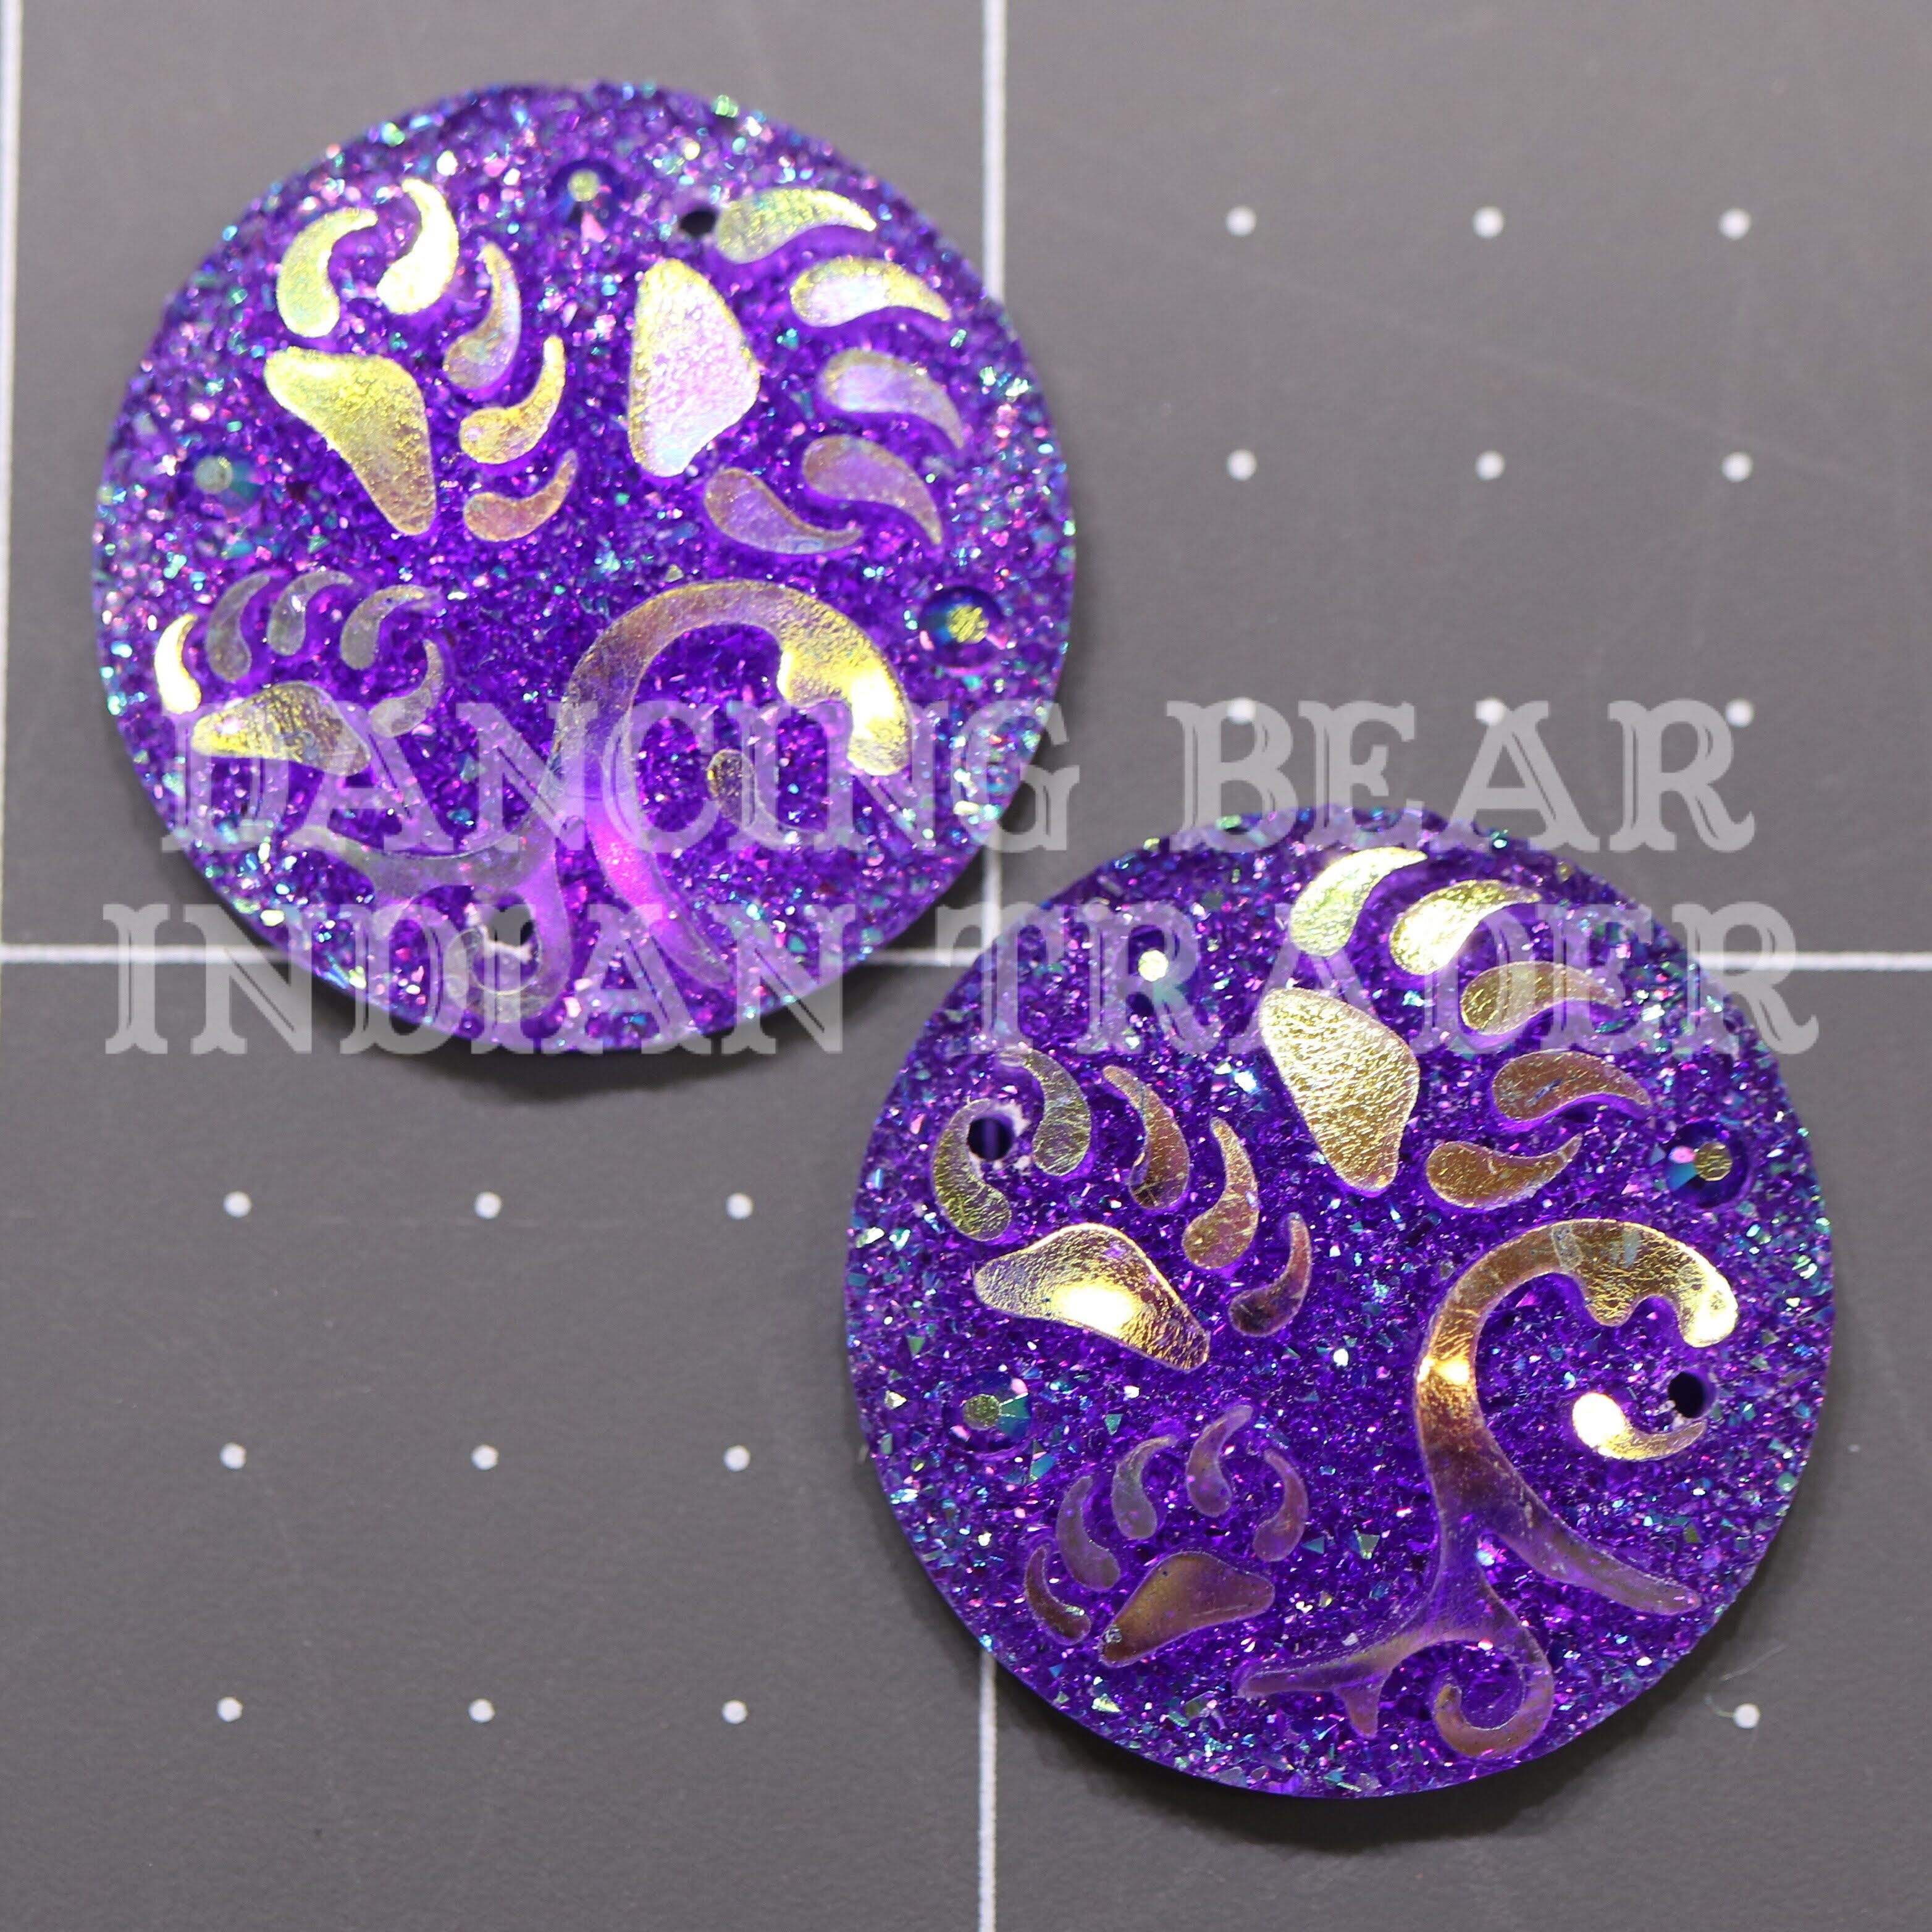 Sparkle Berry Paw Trio Round 25mm Resin Cabochon